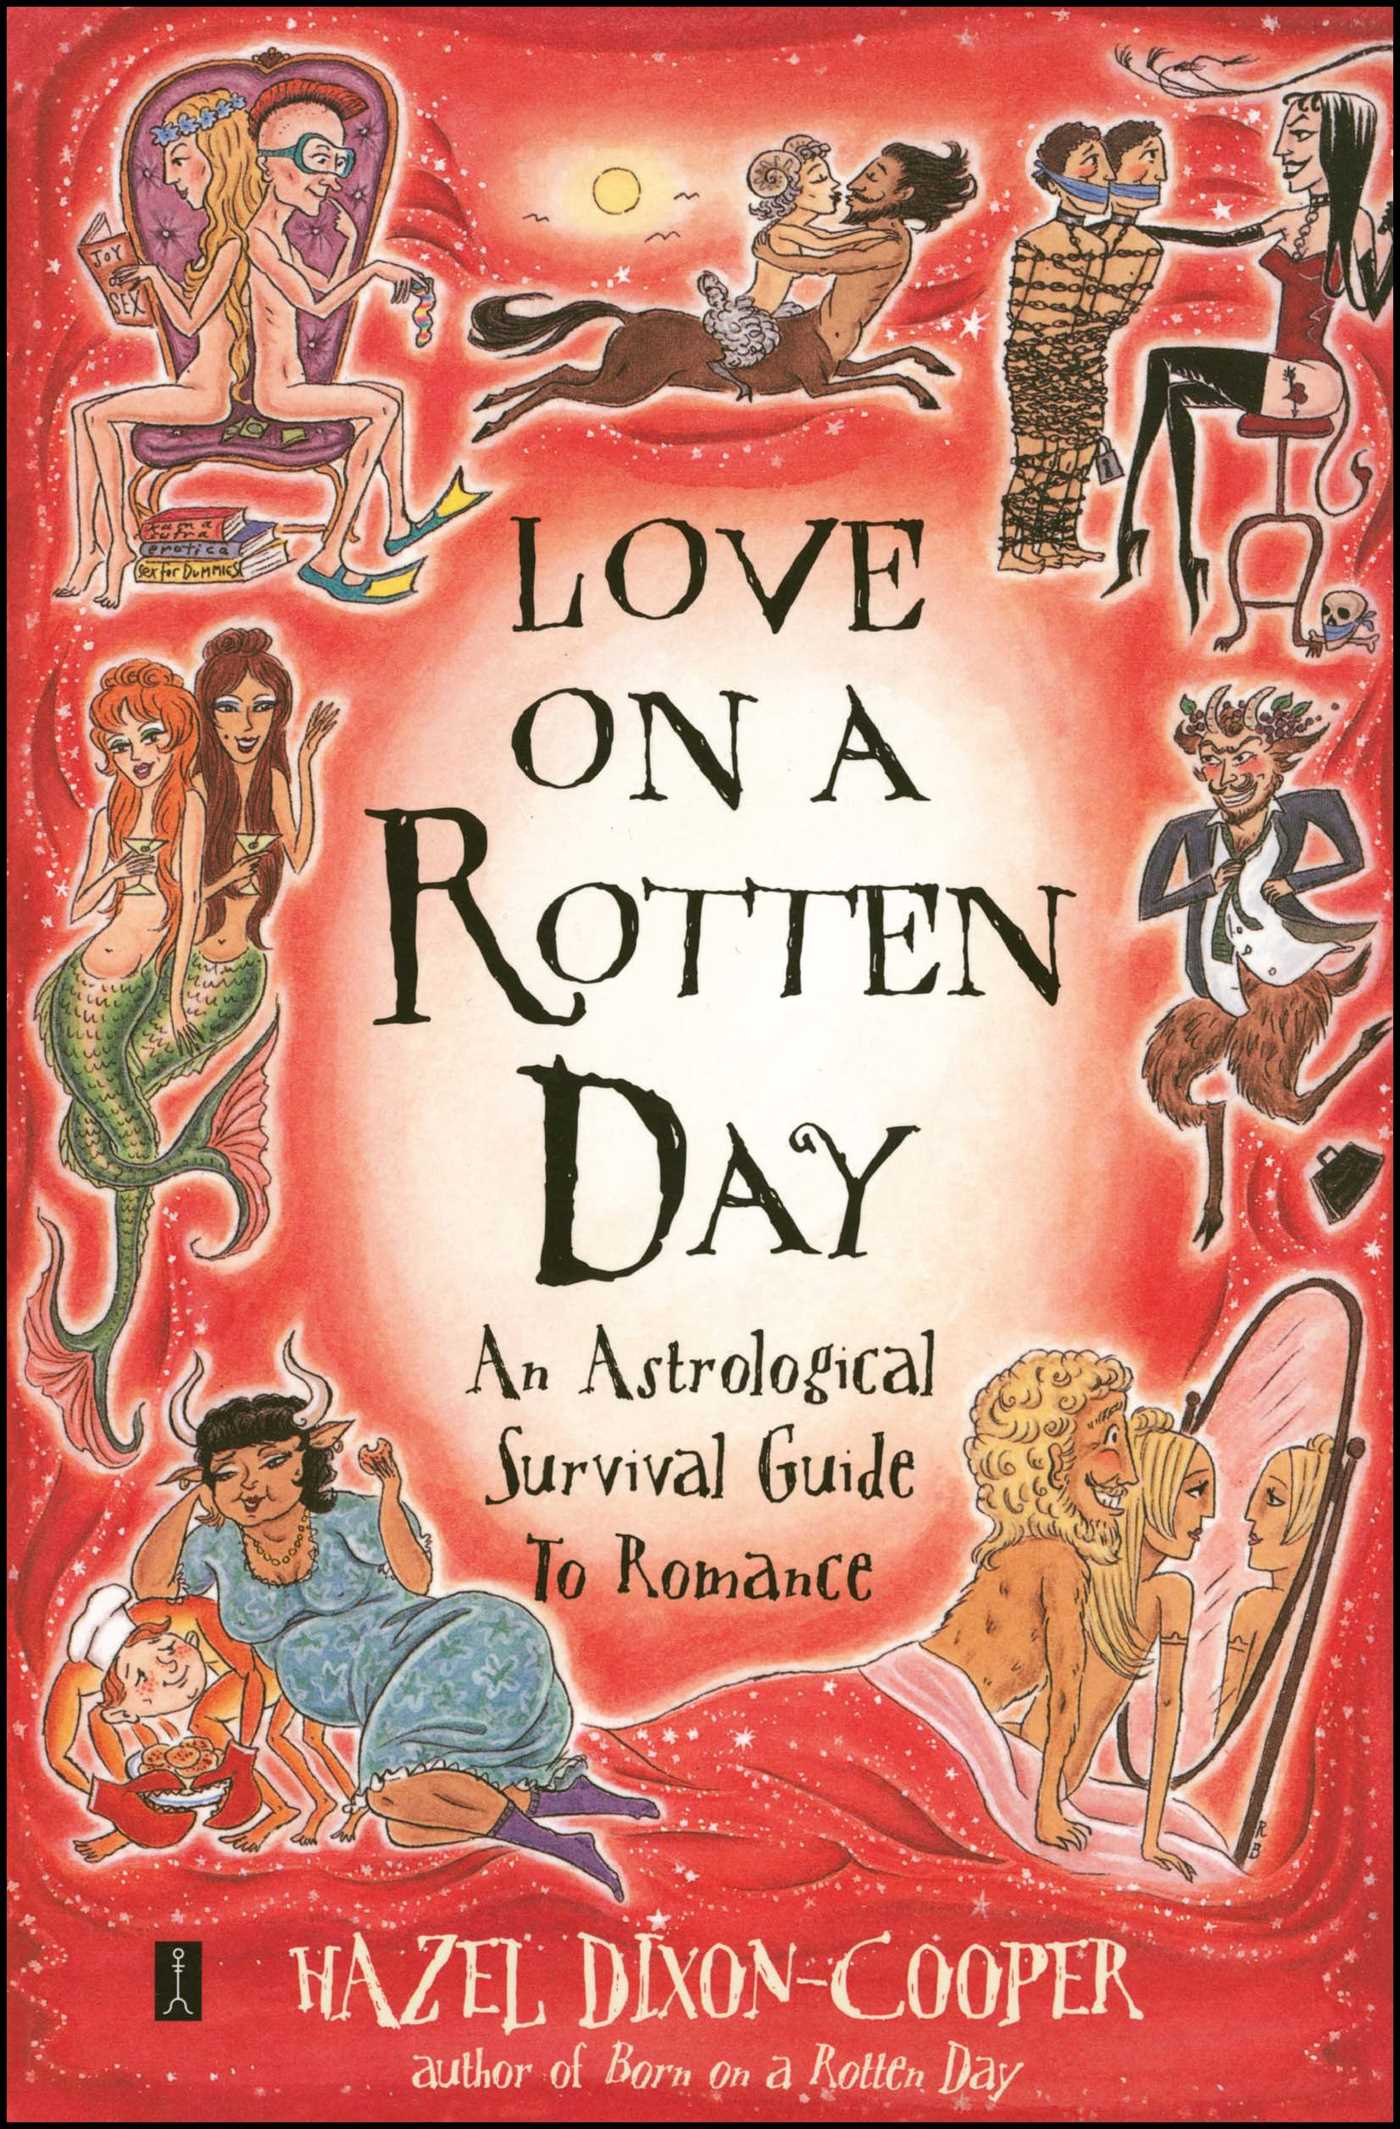 Love on a rotten day book by hazel dixon cooper official love on a rotten day 9780743225632 hr fandeluxe Images